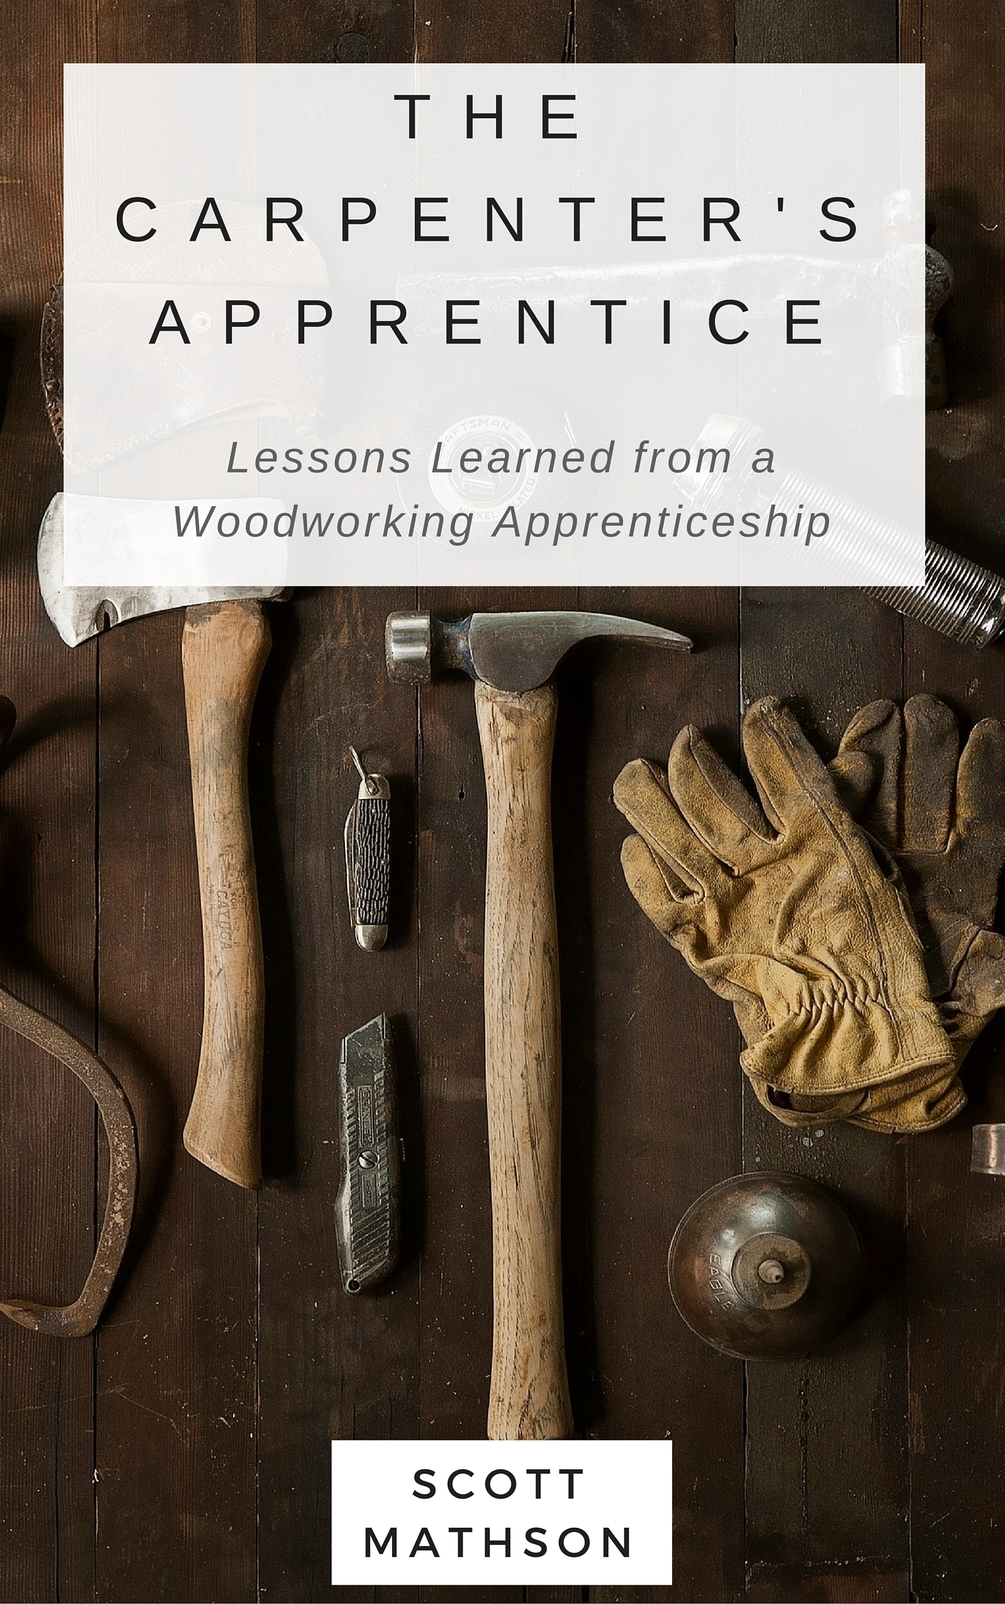 The Carpenter's Apprentice woodworking eBook